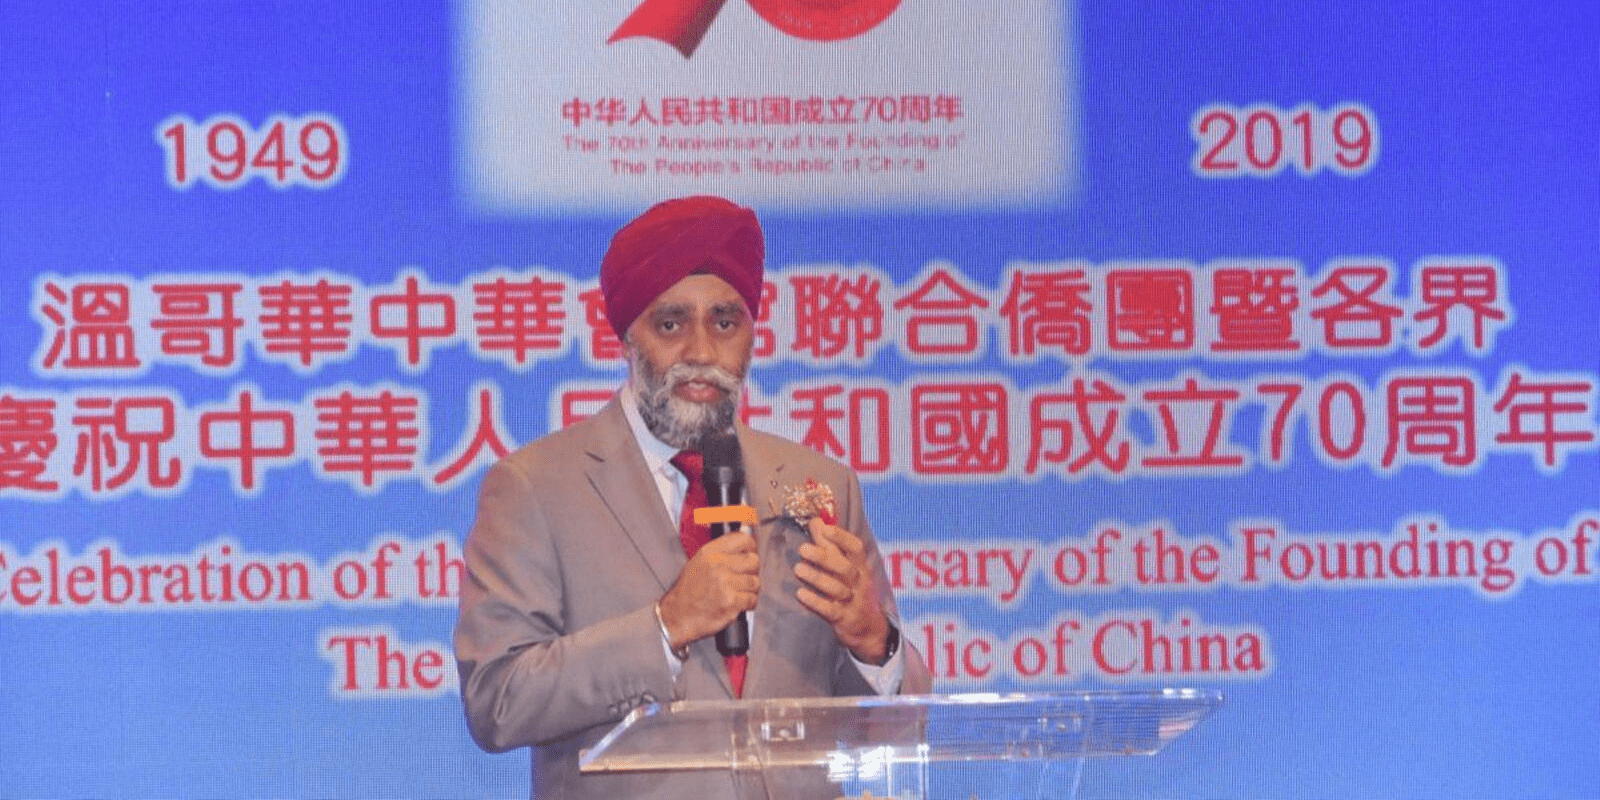 Liberal defence minister criticized for attending event celebrating Chinese Communist Party